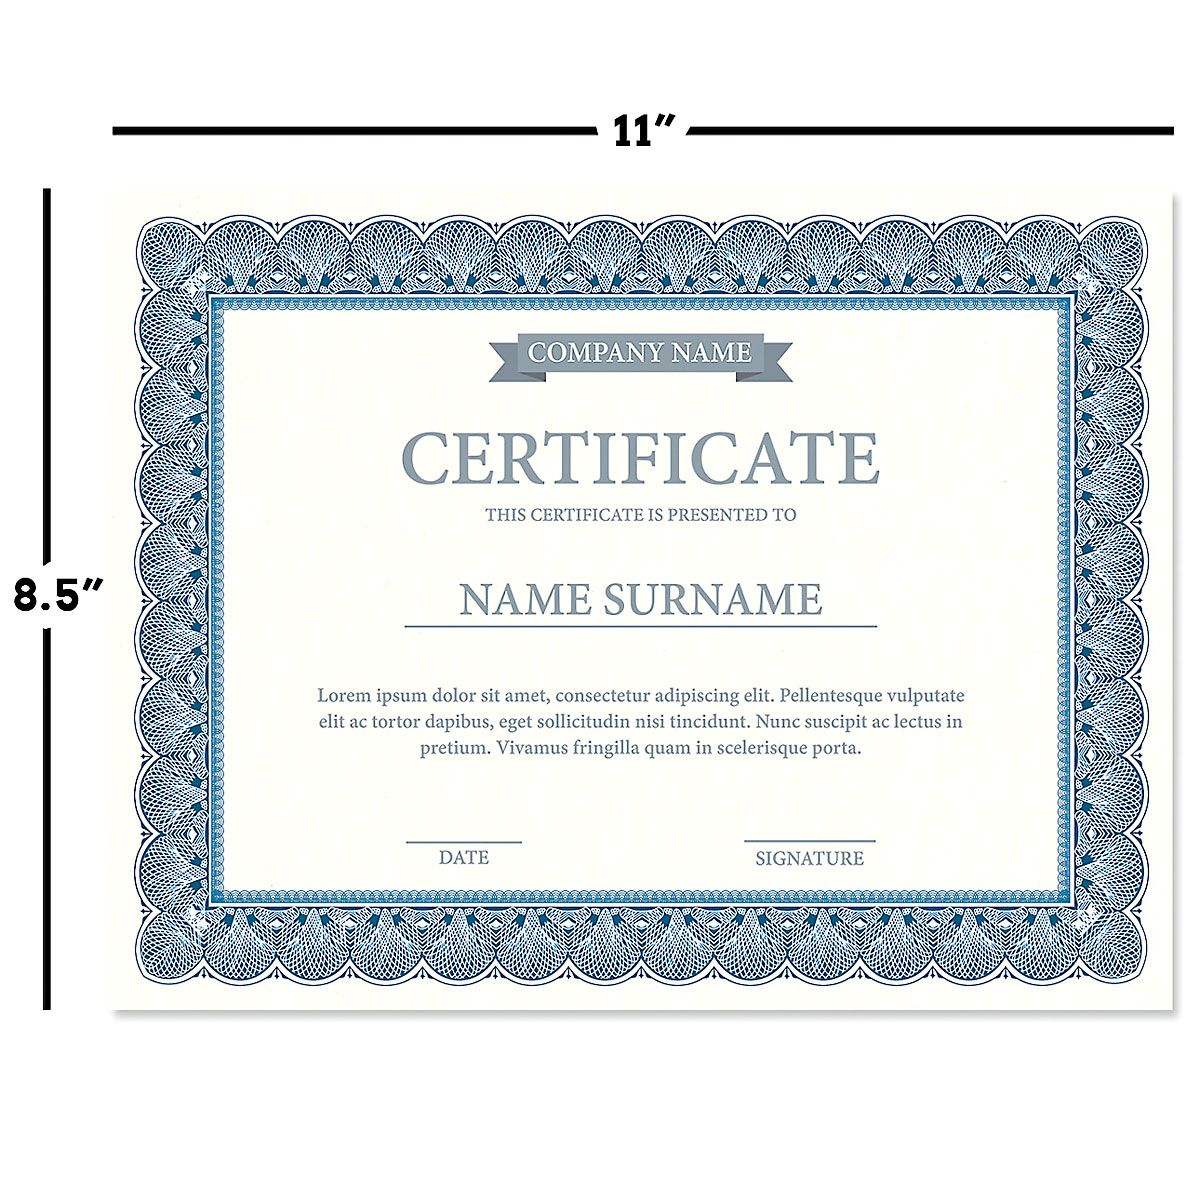 Elite Blue Certificate on White Parchment - Set of 100